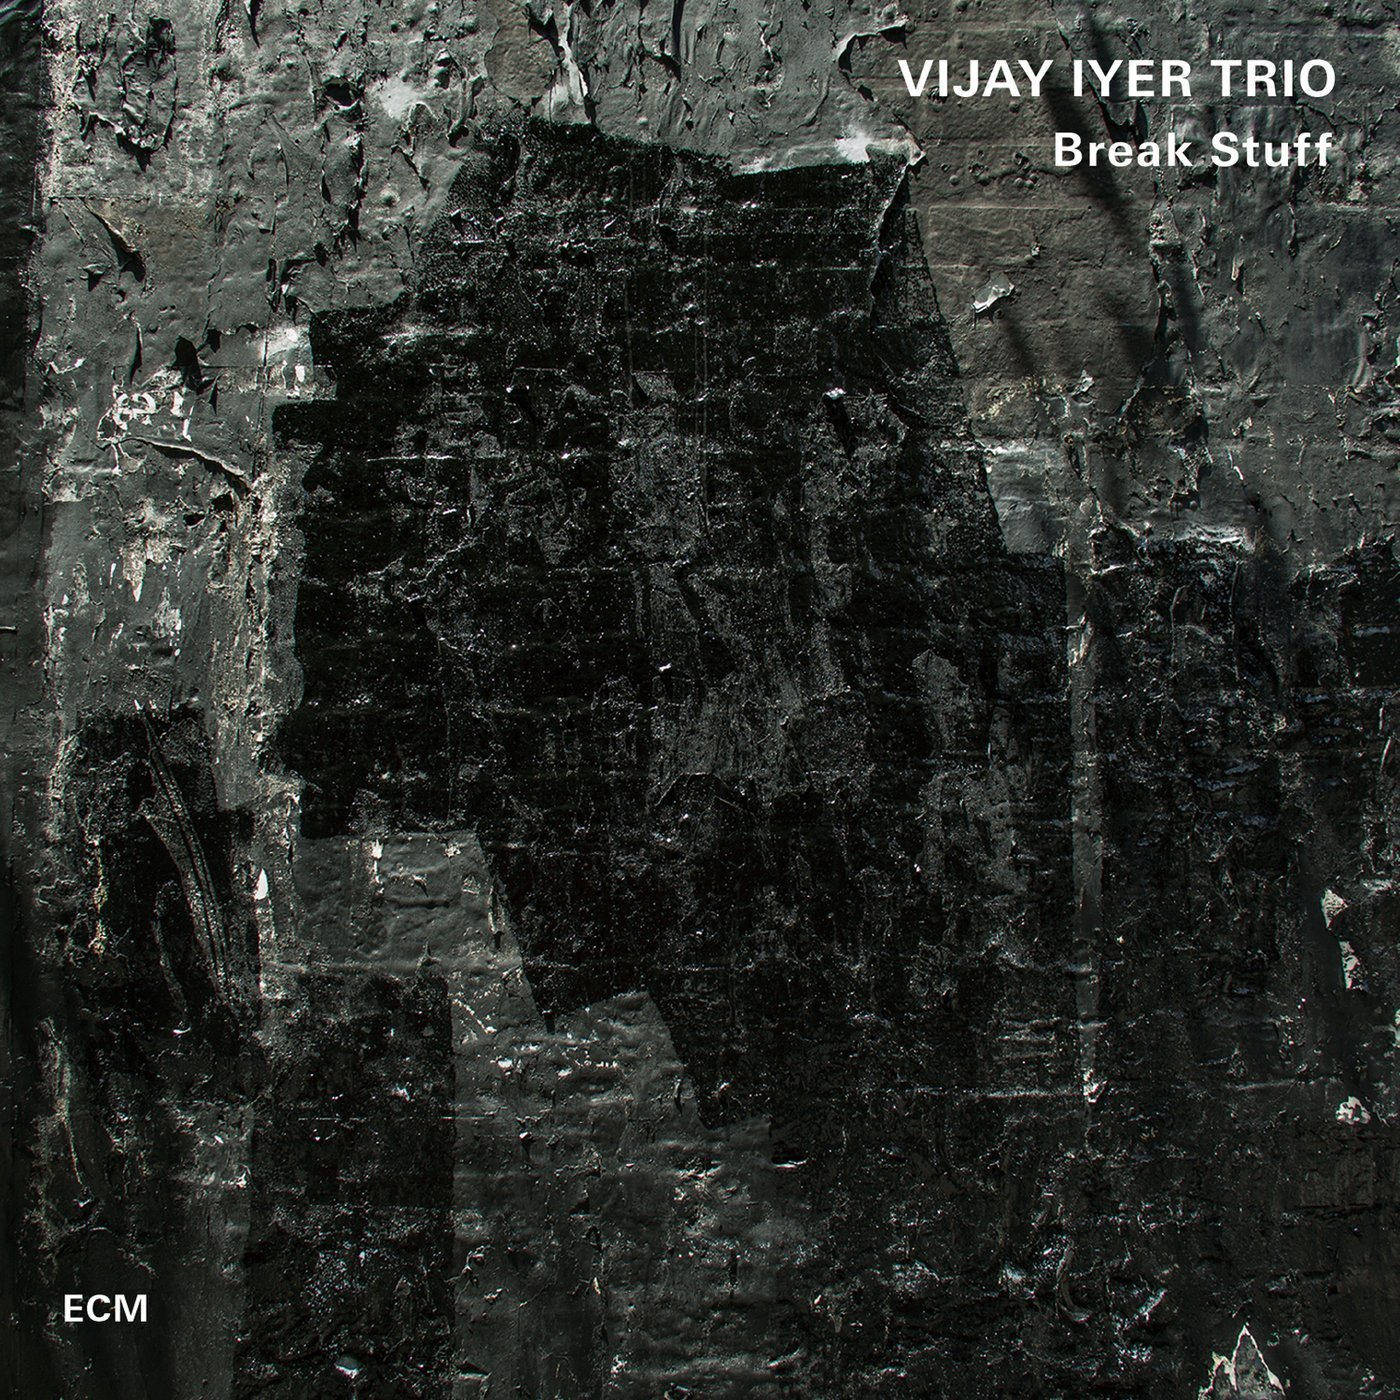 Vijay Iyer Trio - Break Stuff [2 LP] - Amazon.com Music